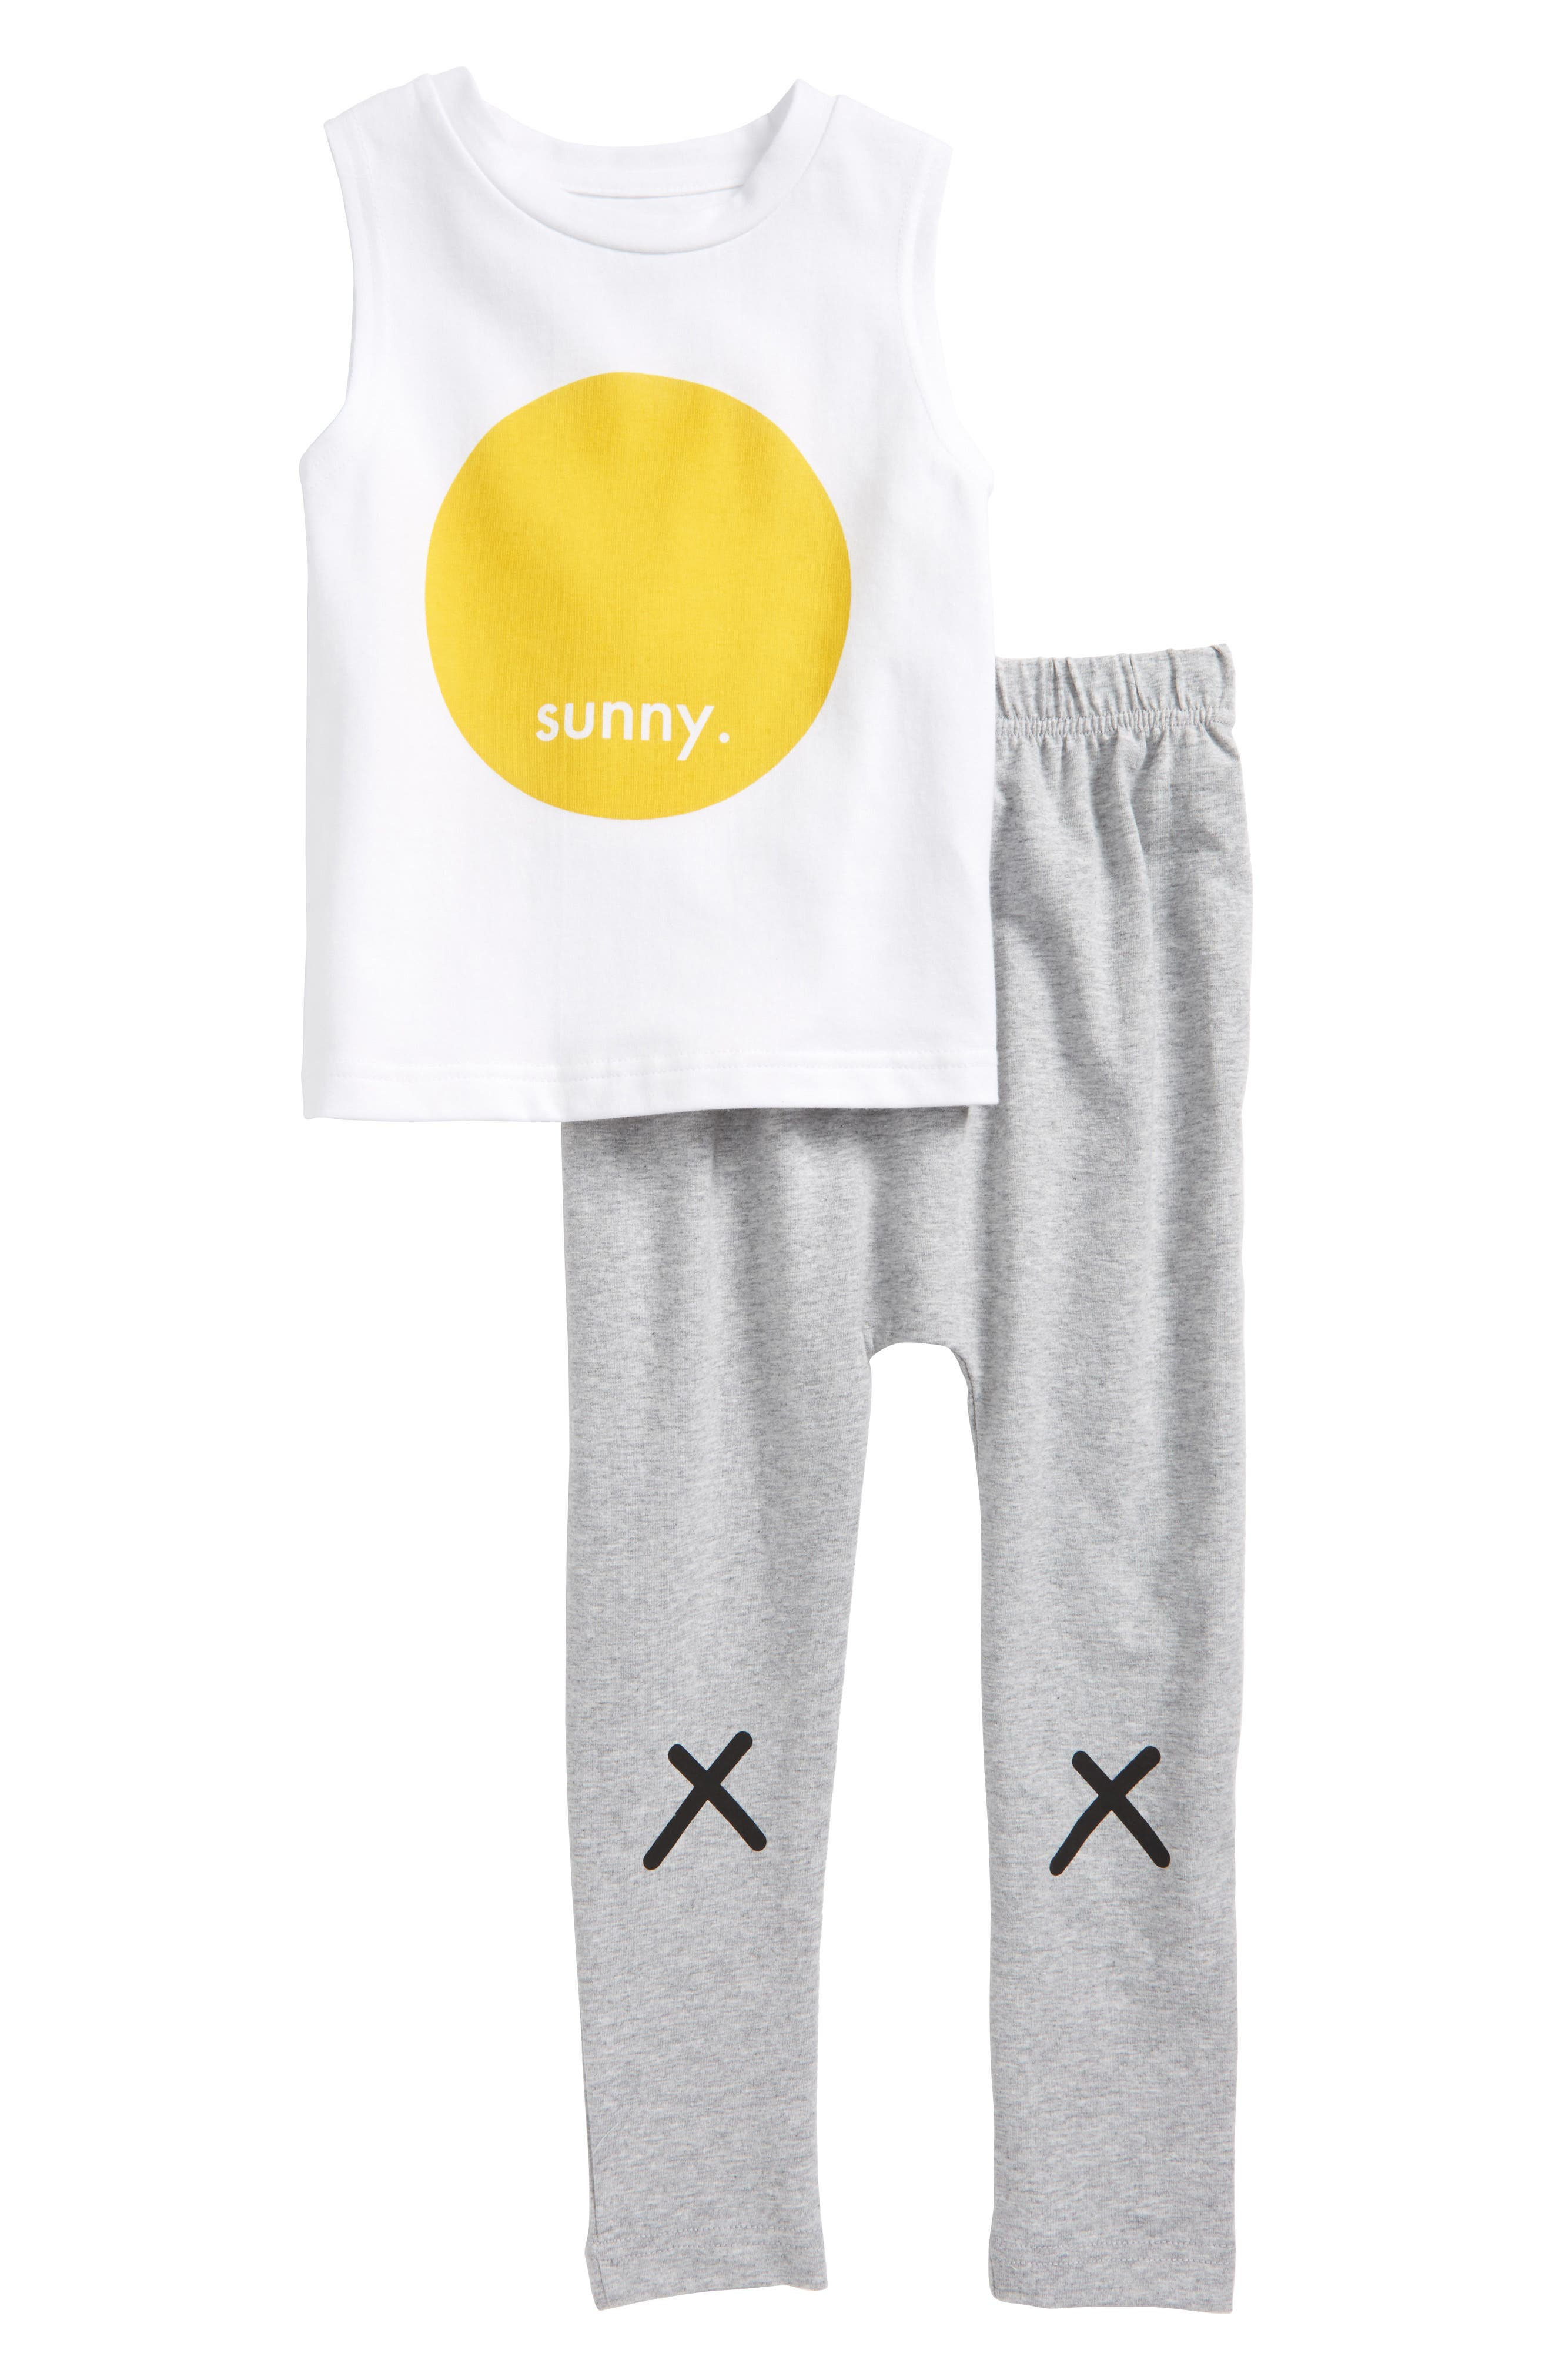 Sunny Tank & Sweatpants Set,                         Main,                         color, White / Grey